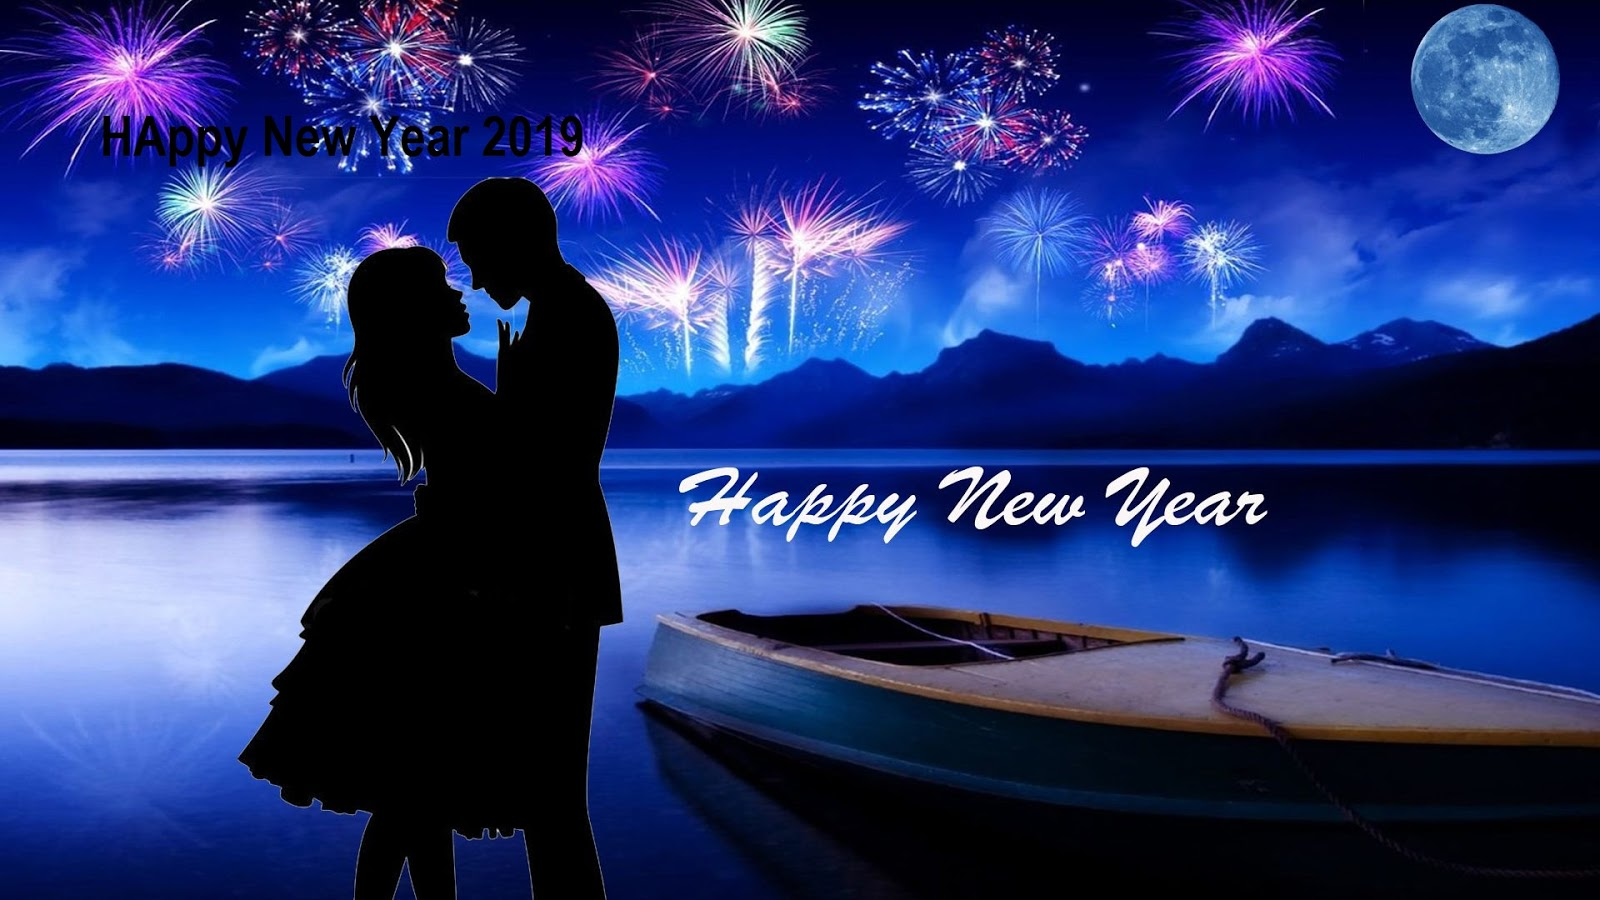 Happy New Year 2019 Hd Wallpaper Download Happy New Year 2019